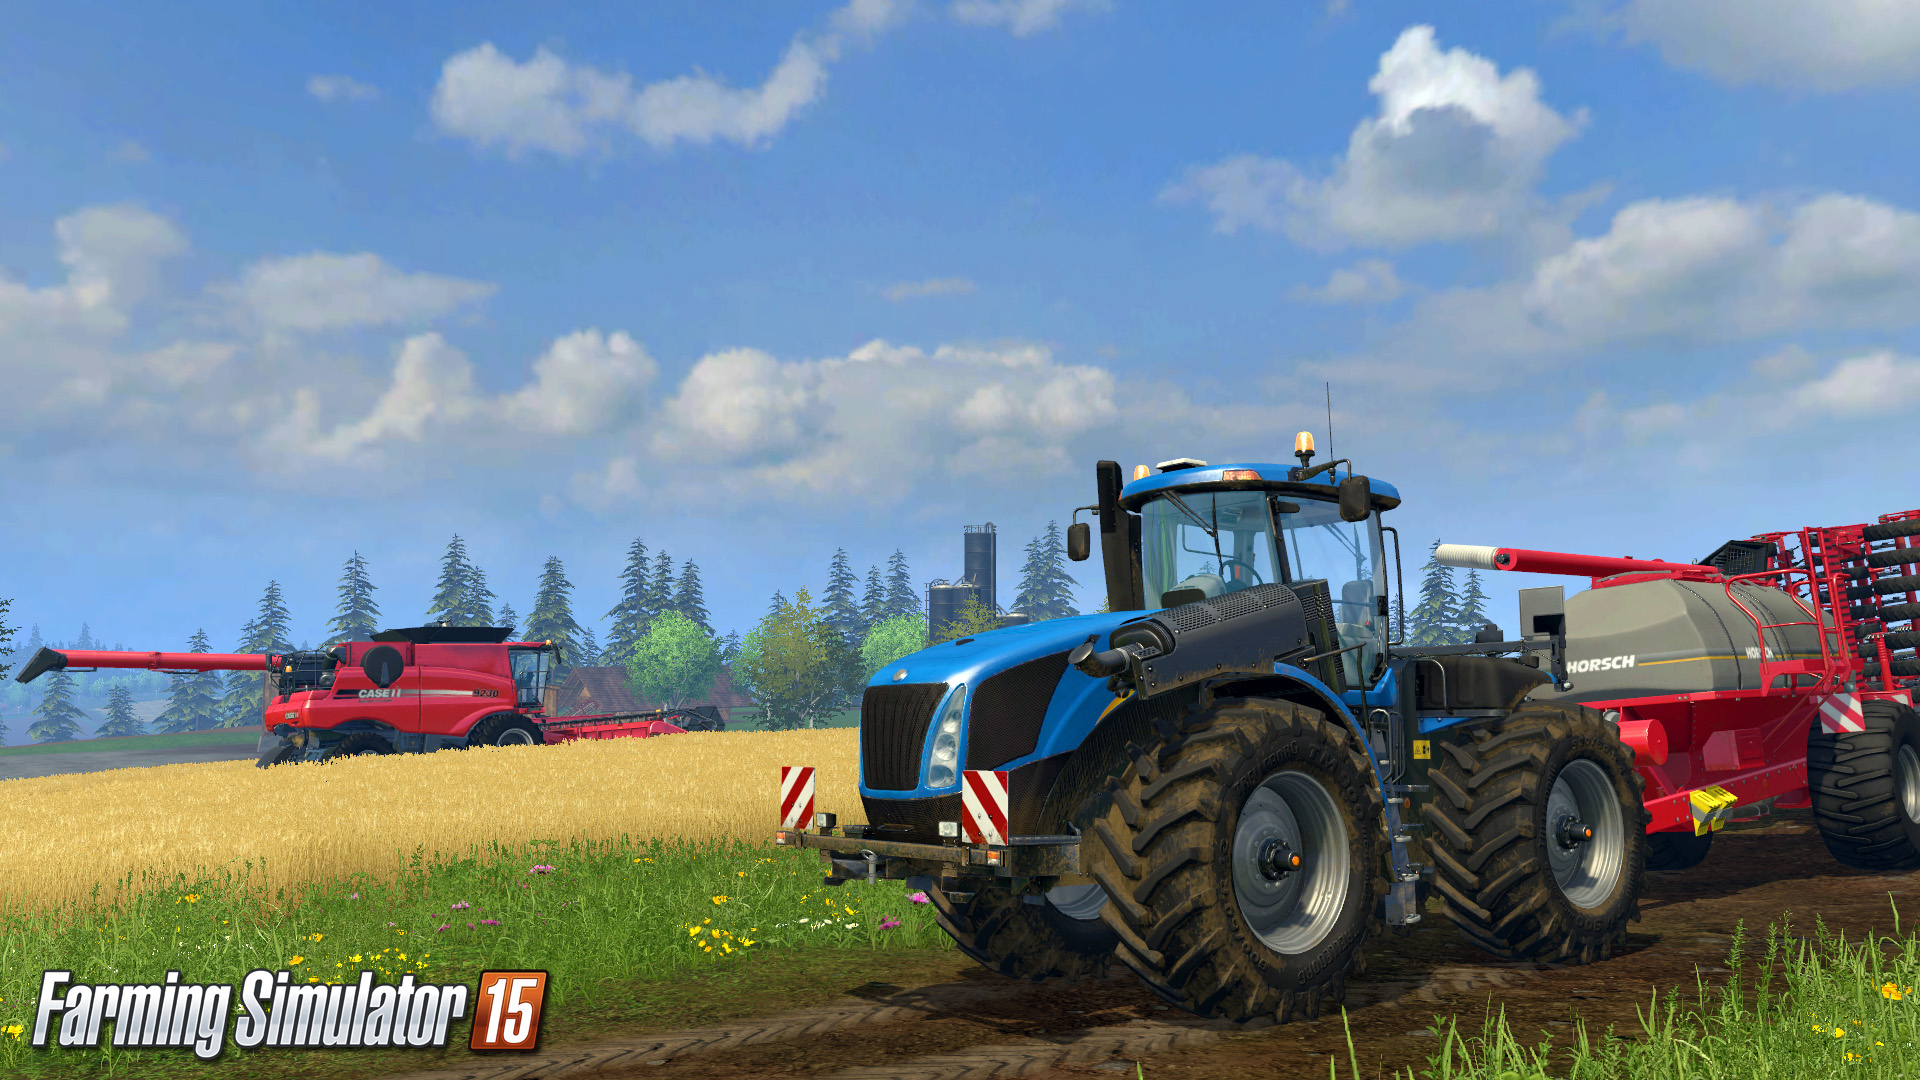 Farming Simulator 2015 HD Wallpapers Backgrounds 1920x1080